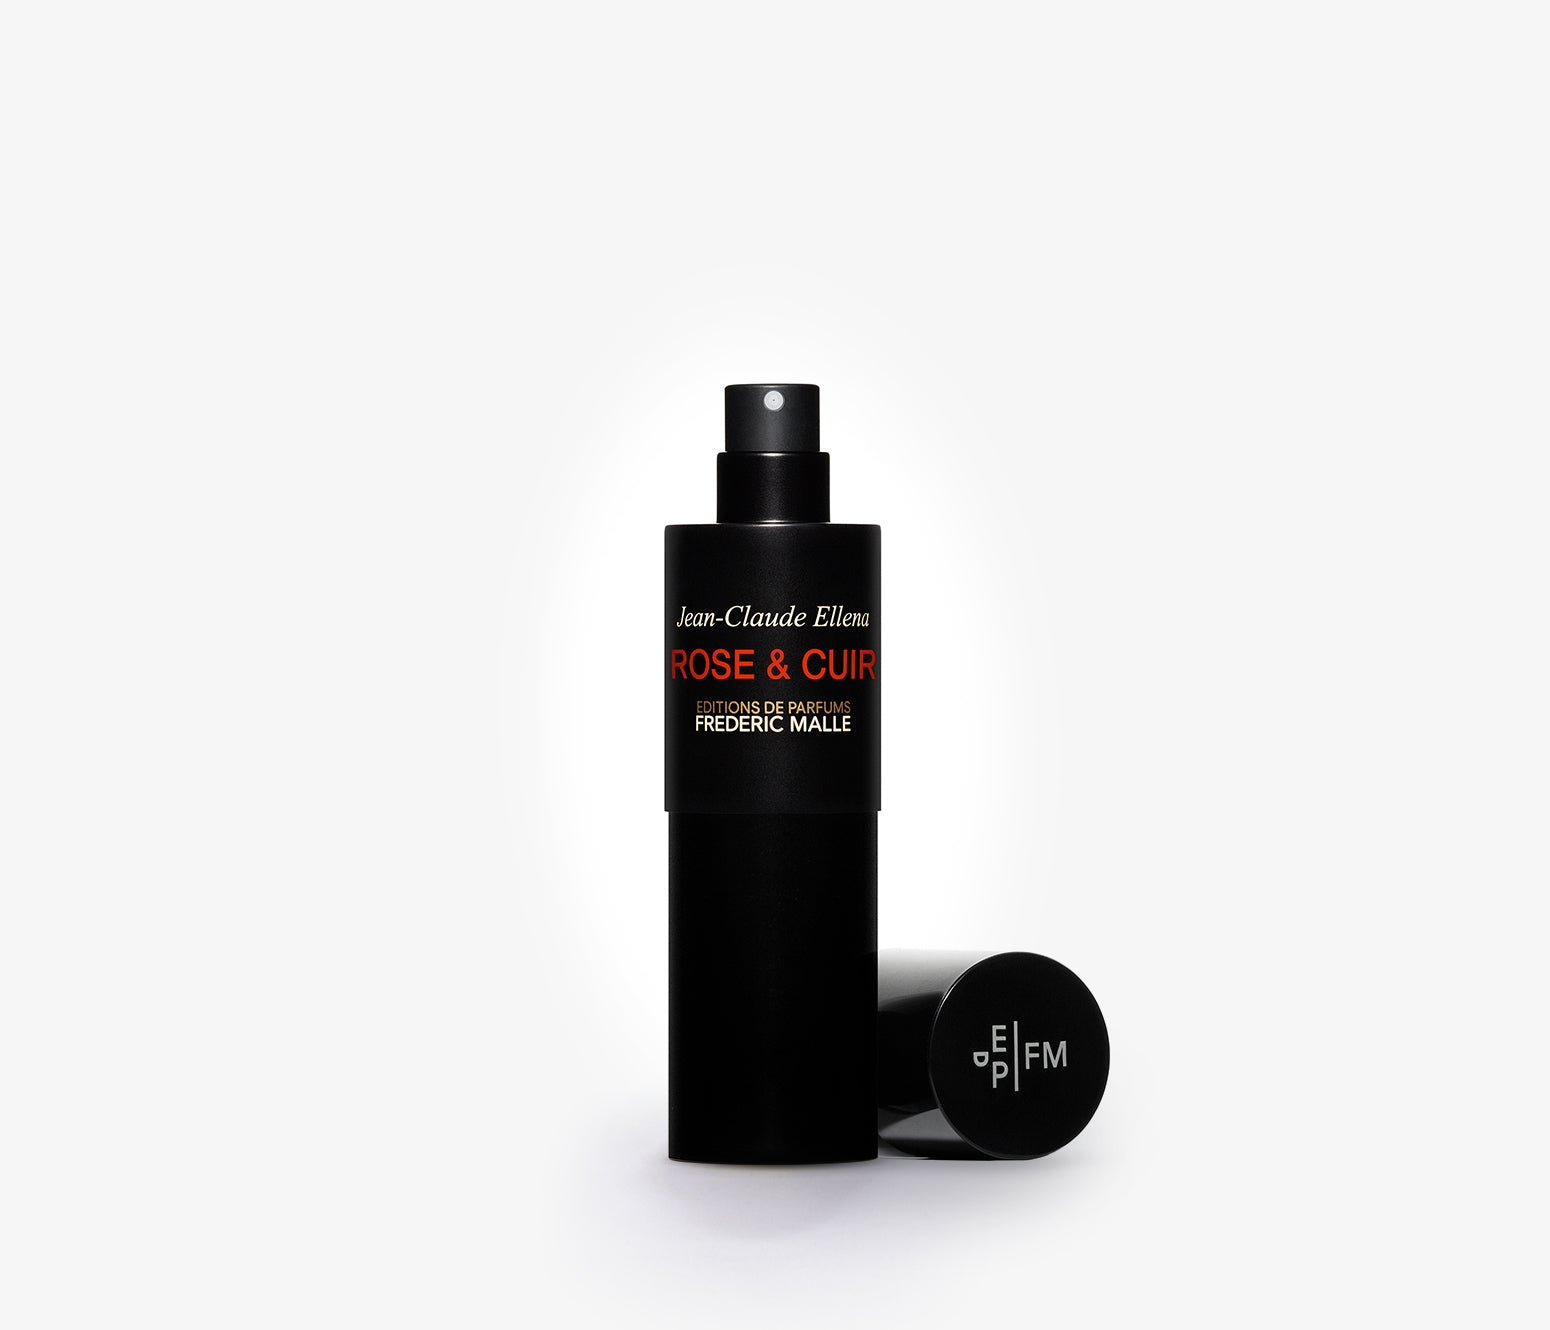 Frederic Malle - Rose and Cuir - 50ml - DDC001 - product image - Fragrance - Les Senteurs